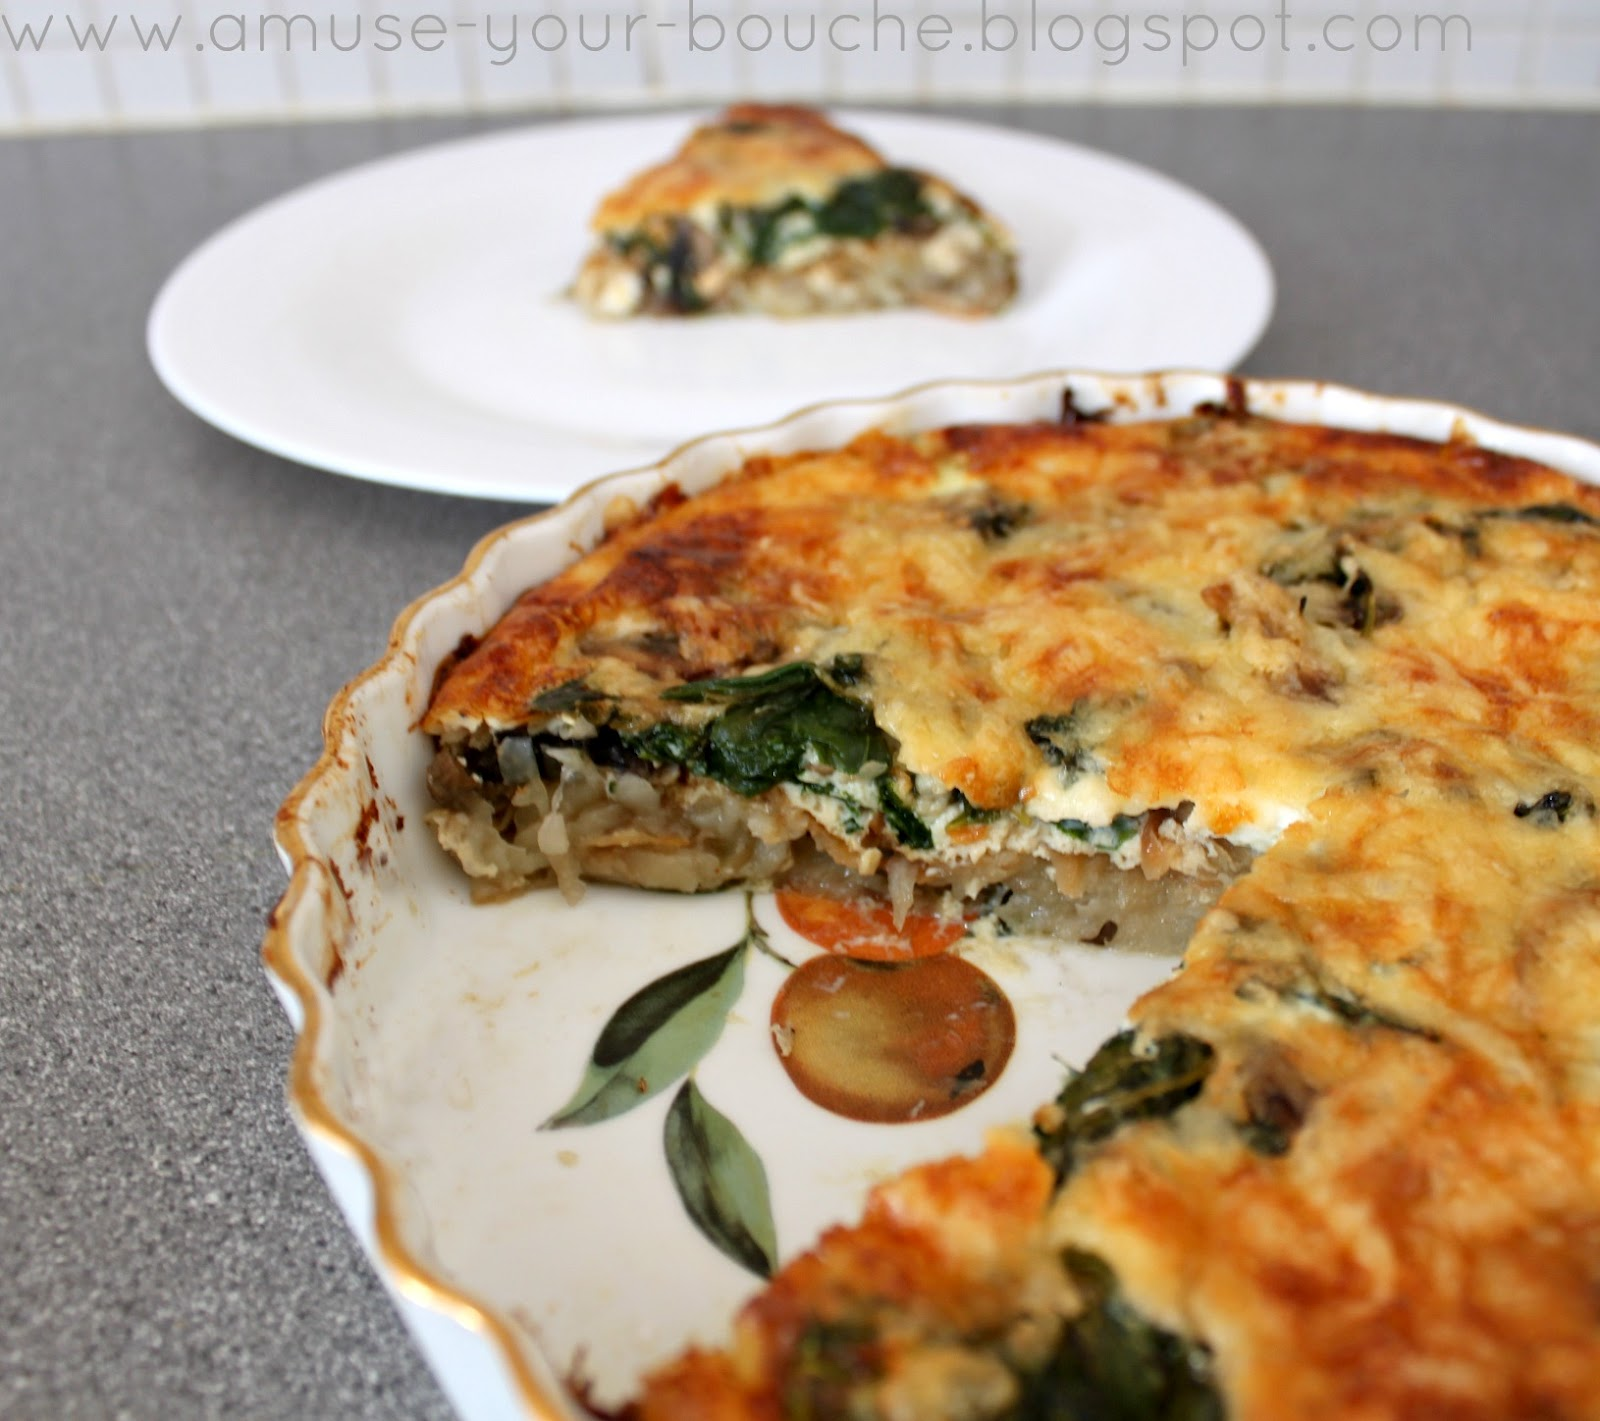 Spinach and mushroom quiche with potato hash crust - Amuse Your Bouche